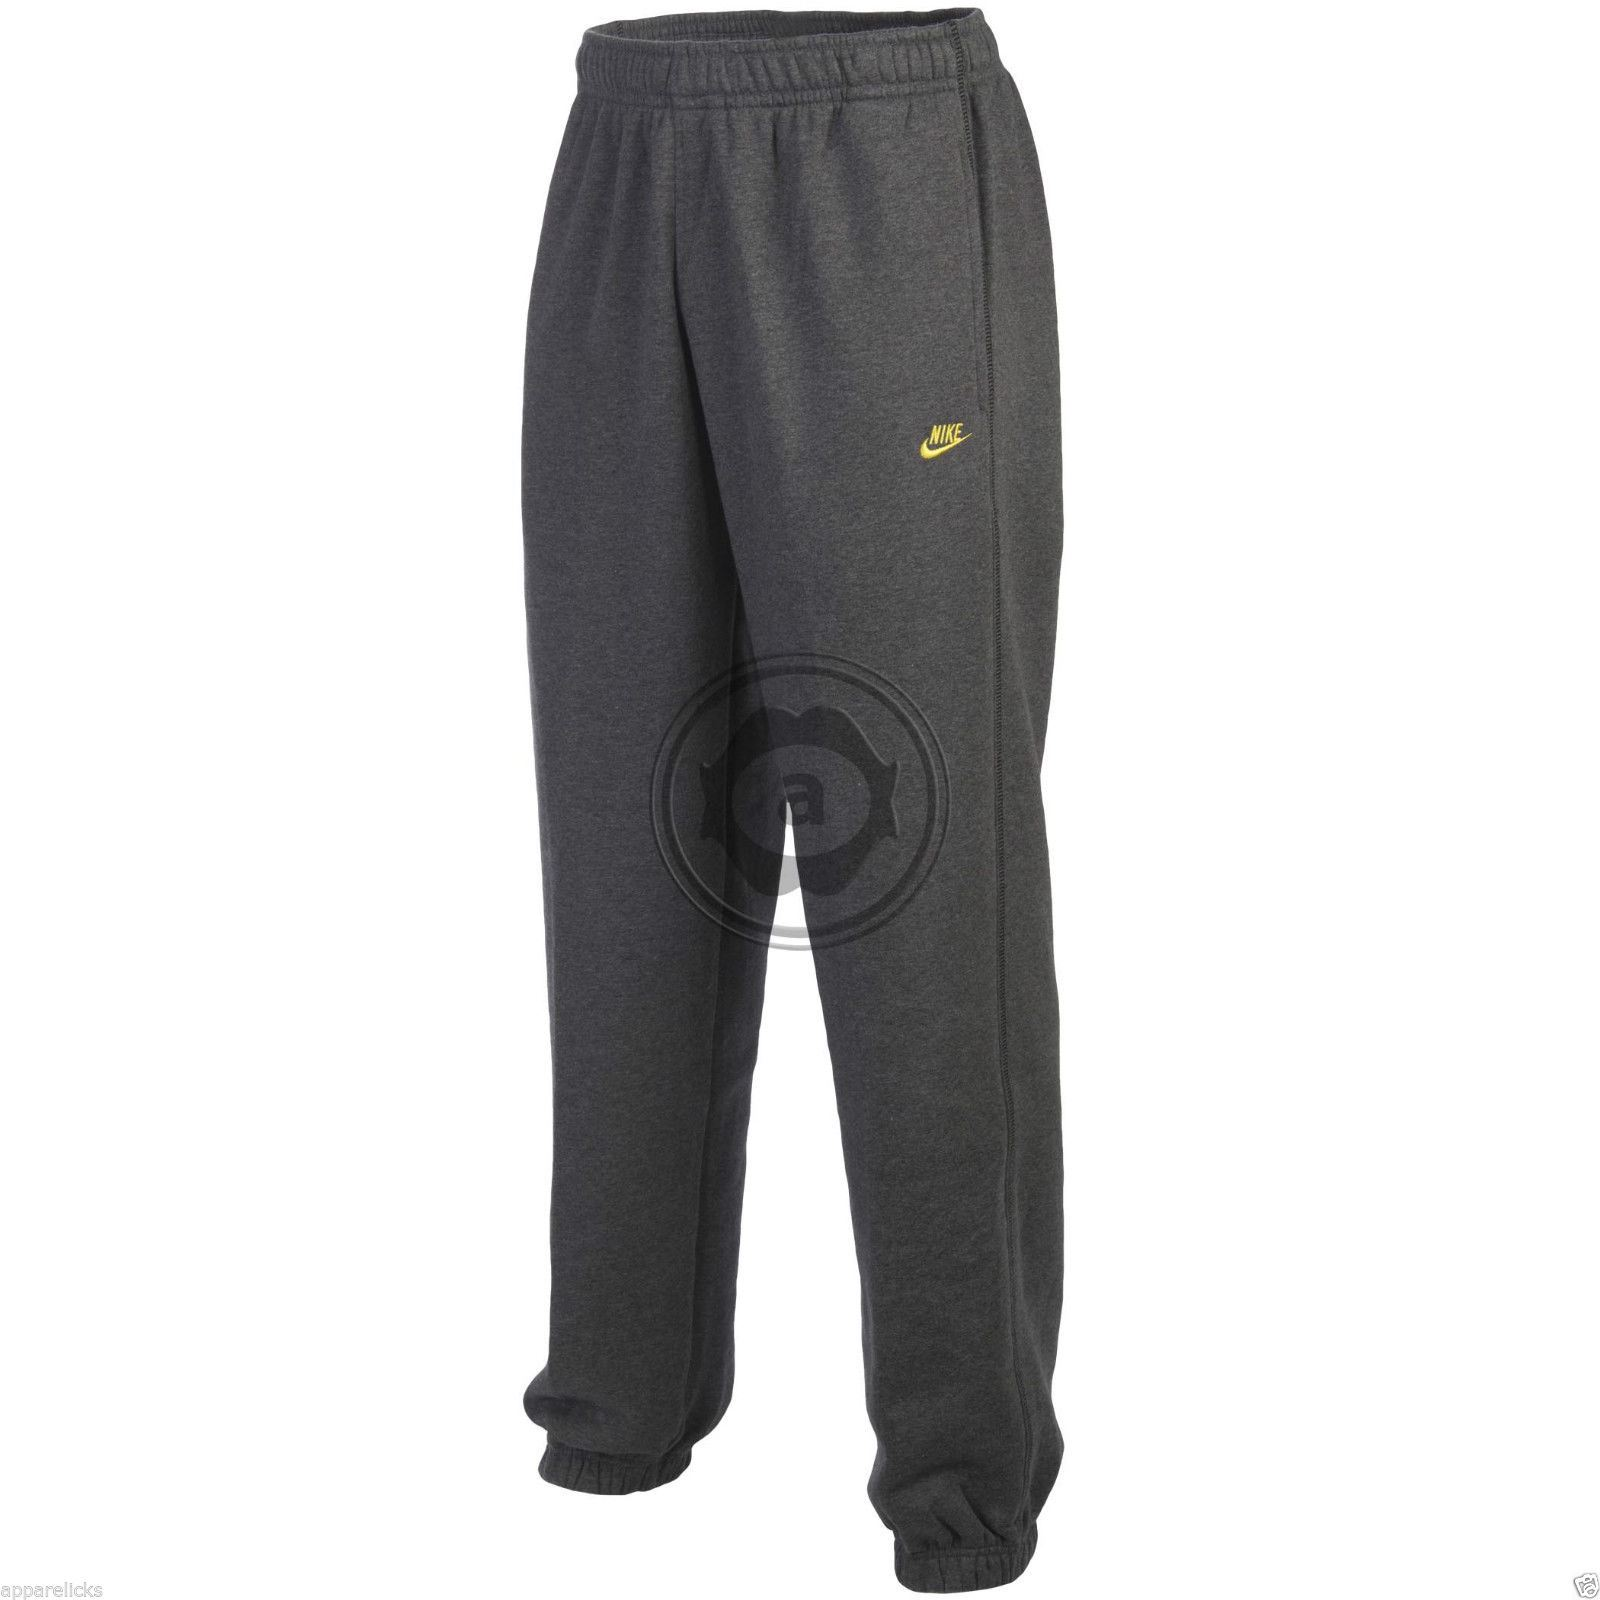 Shop men's jogging bottoms and sweat pants at Topman. From classic grey to trend-led prints from just £ Shop with free delivery & free UK returns. Shop men's jogging bottoms and sweat pants at Topman. From classic grey to trend-led prints from just £ Having said that, our men's joggers are great for dressing up or down, so if you're.